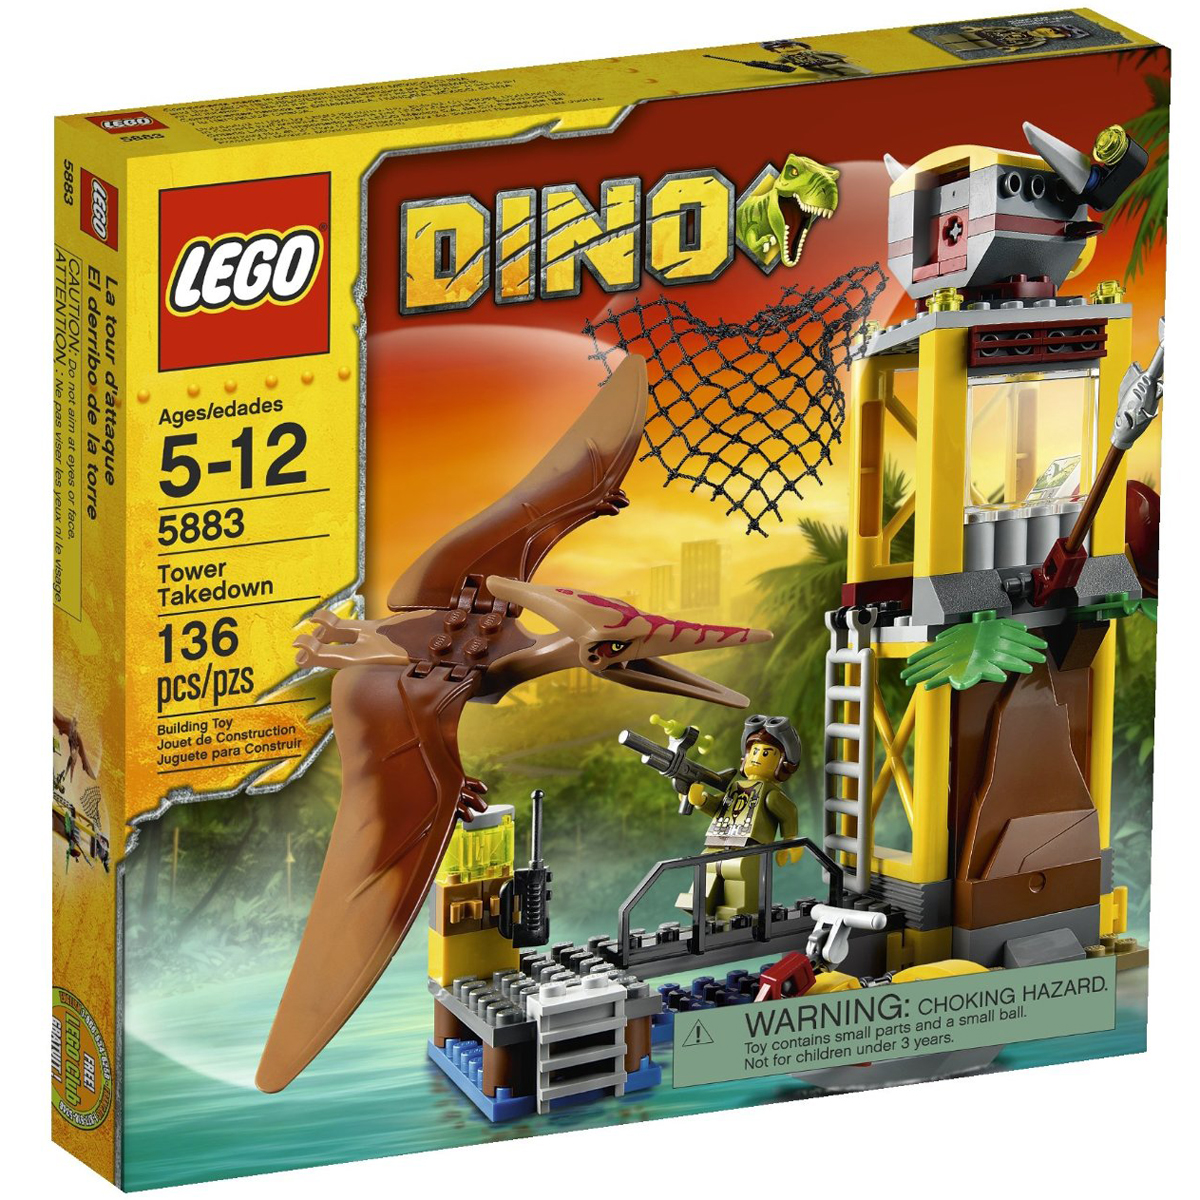 Do choi Lego 5883 - Thap Canh Khung Long Bay